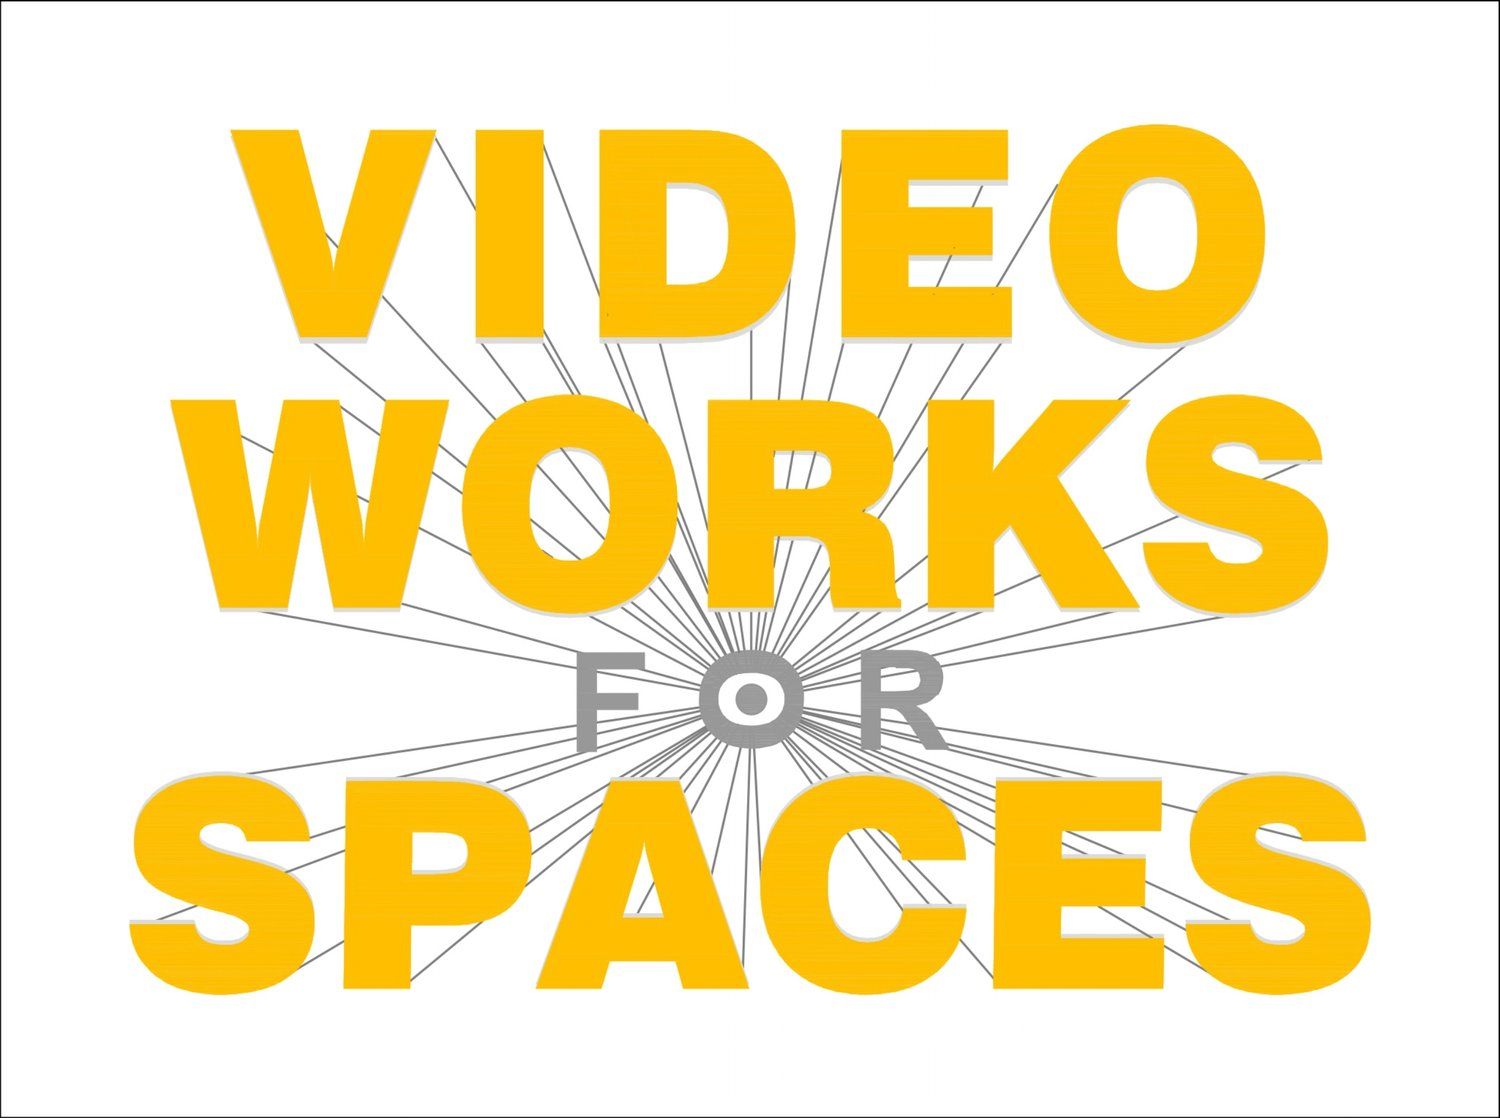 VIDEO WORKS FOR SPACES